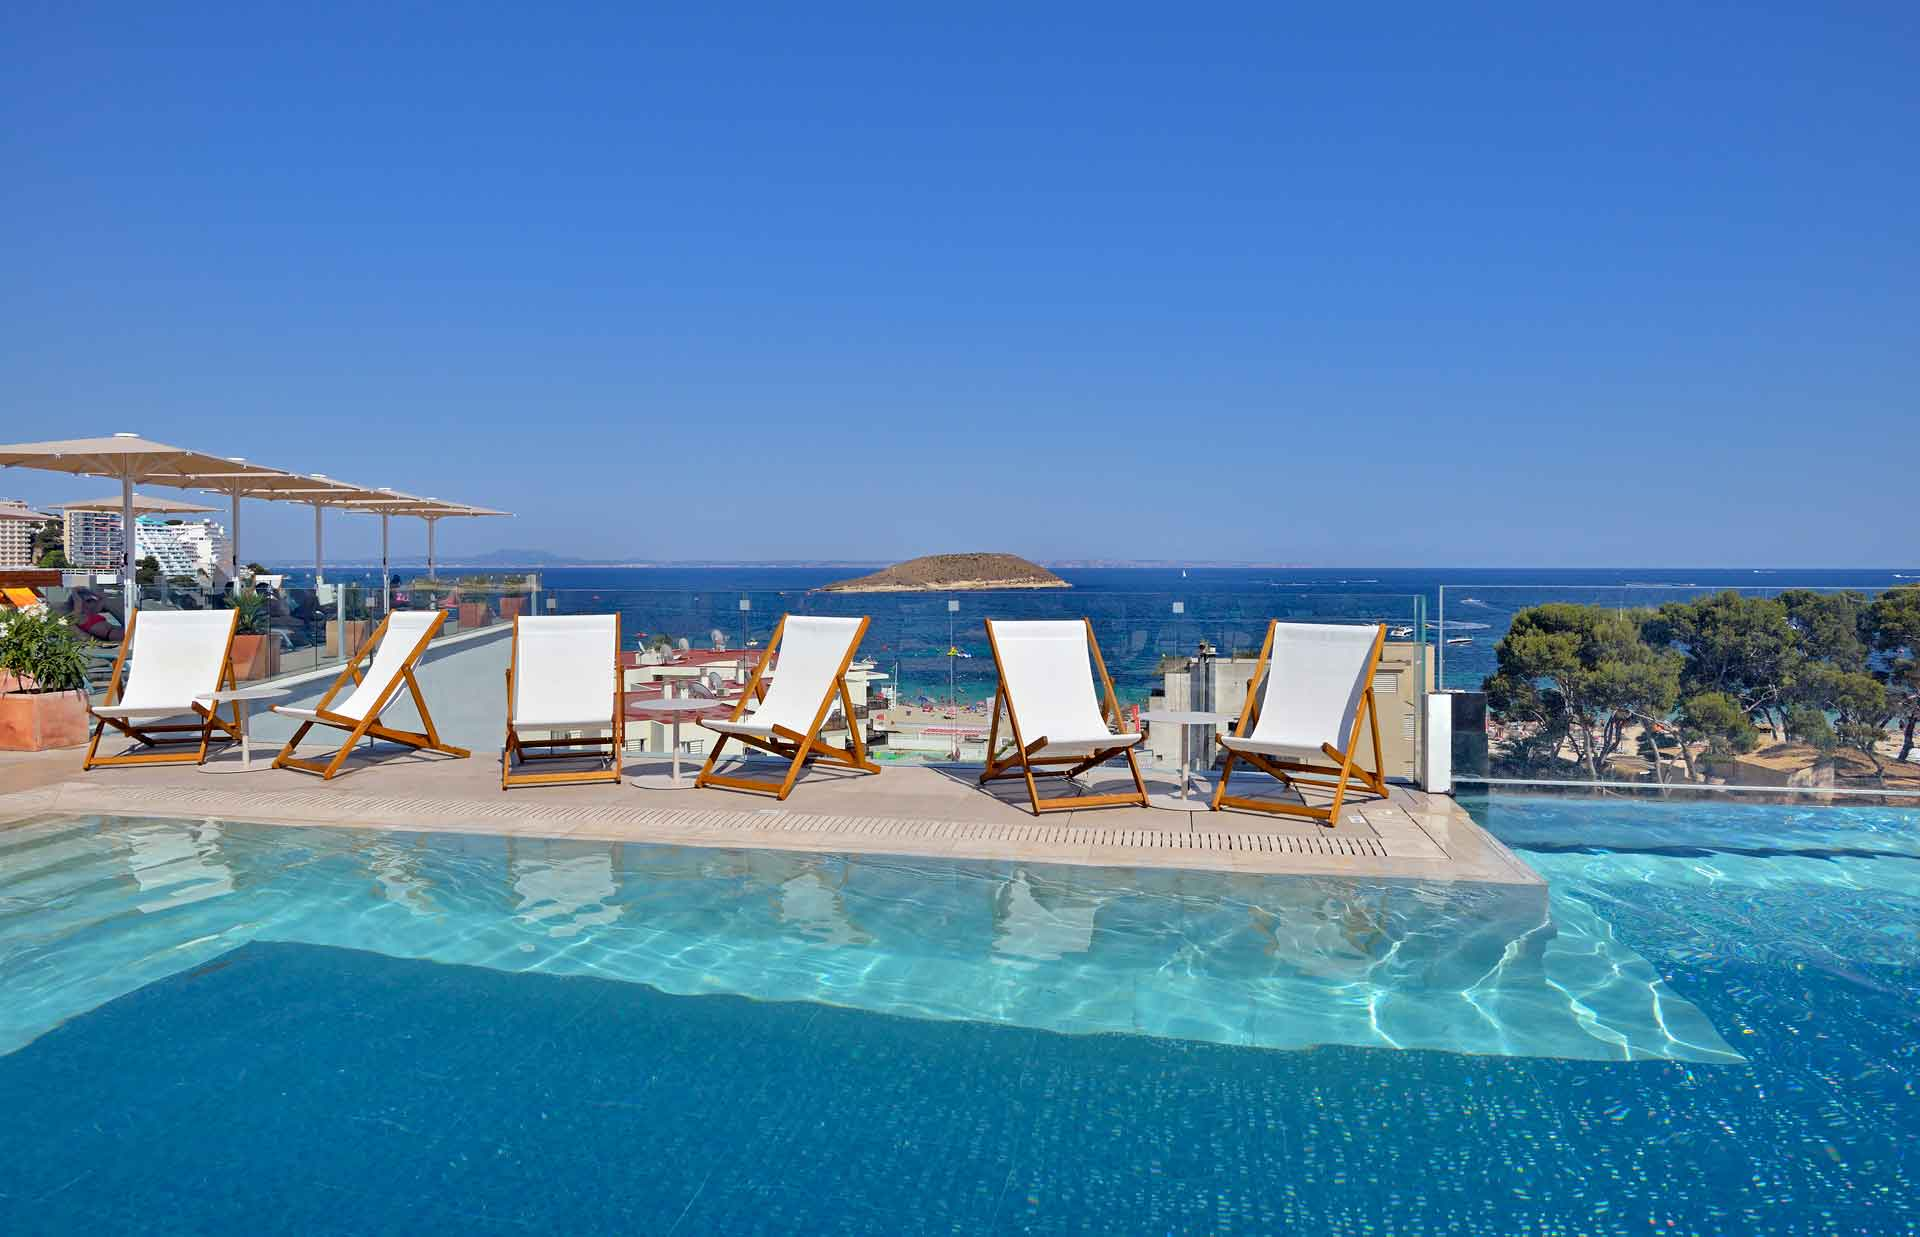 tagungshotels_mallorca_The_Plaza_Pool-web